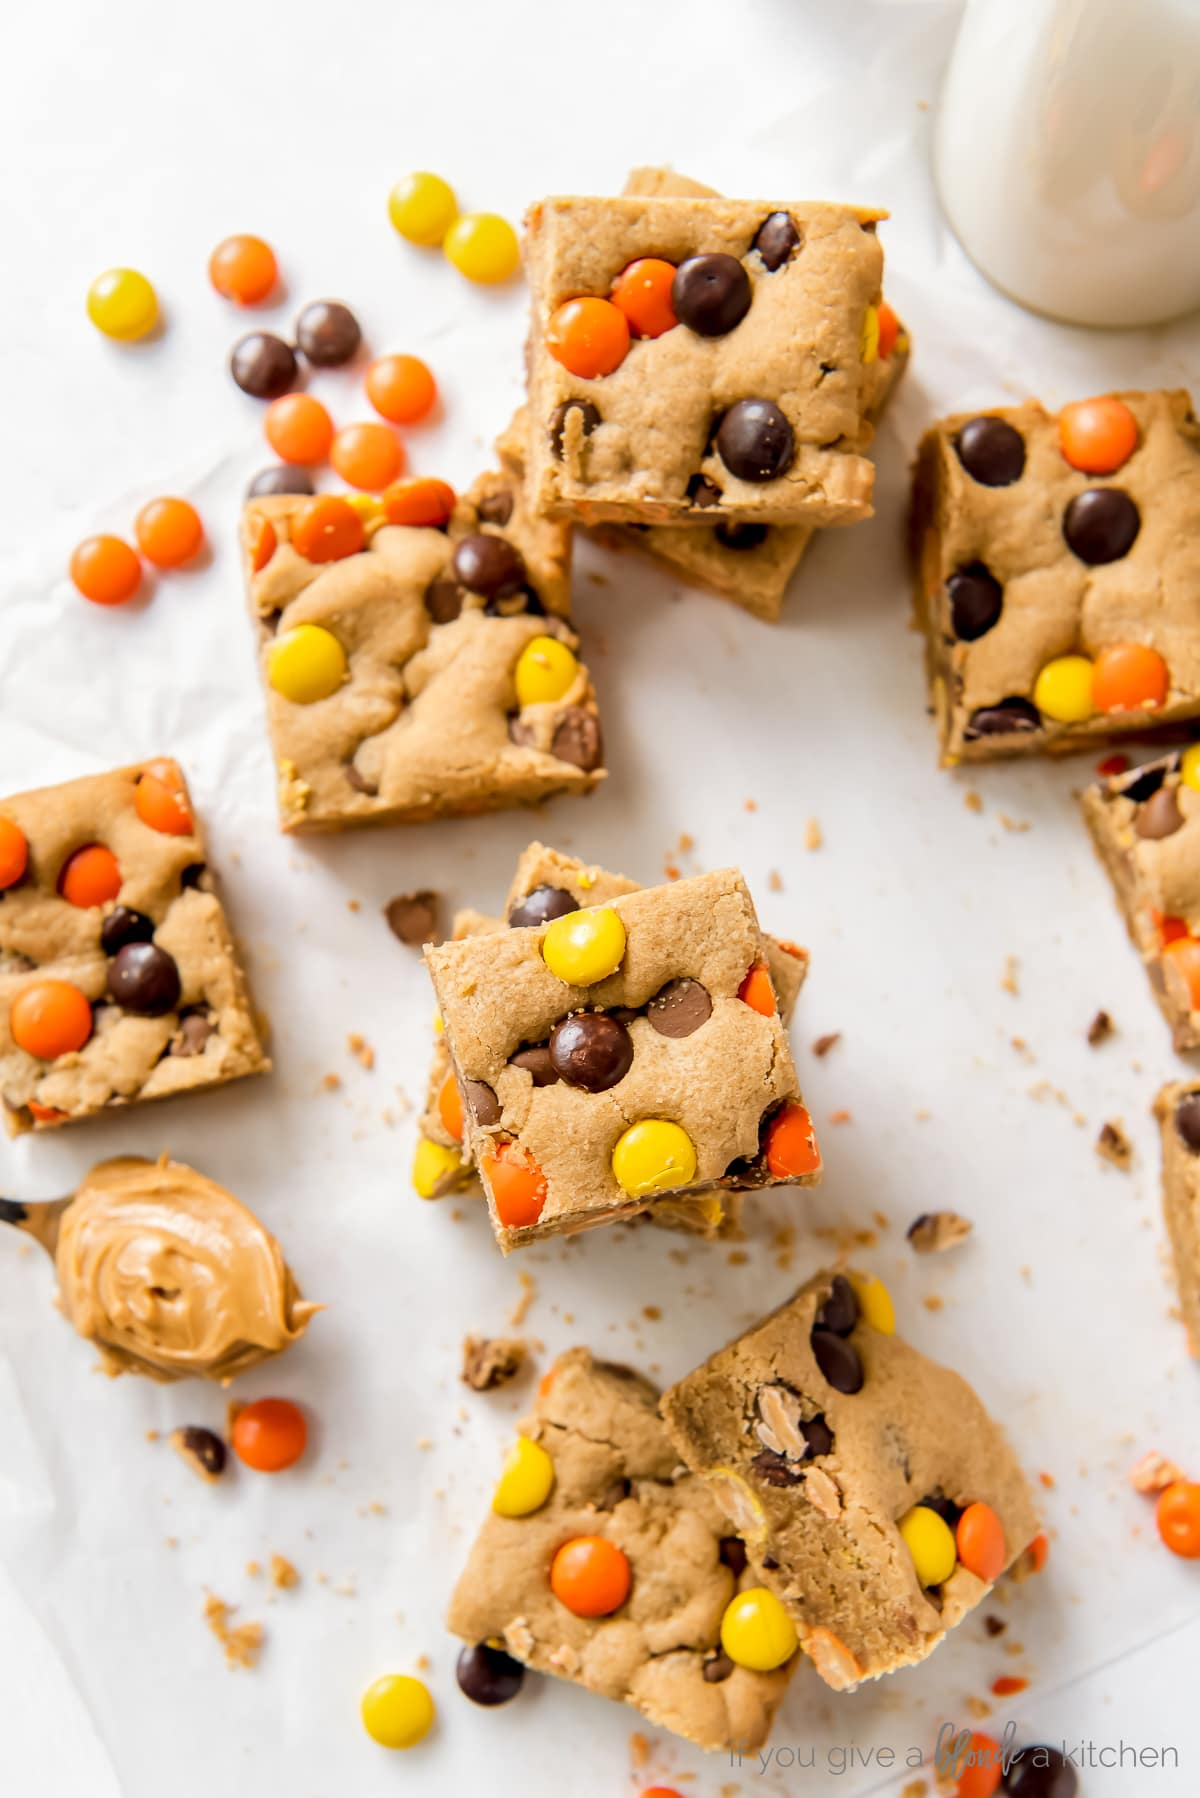 reeses pieces peanut butter blondies on parchment paper next to more reeses pieces candies and spoon of peanut butter